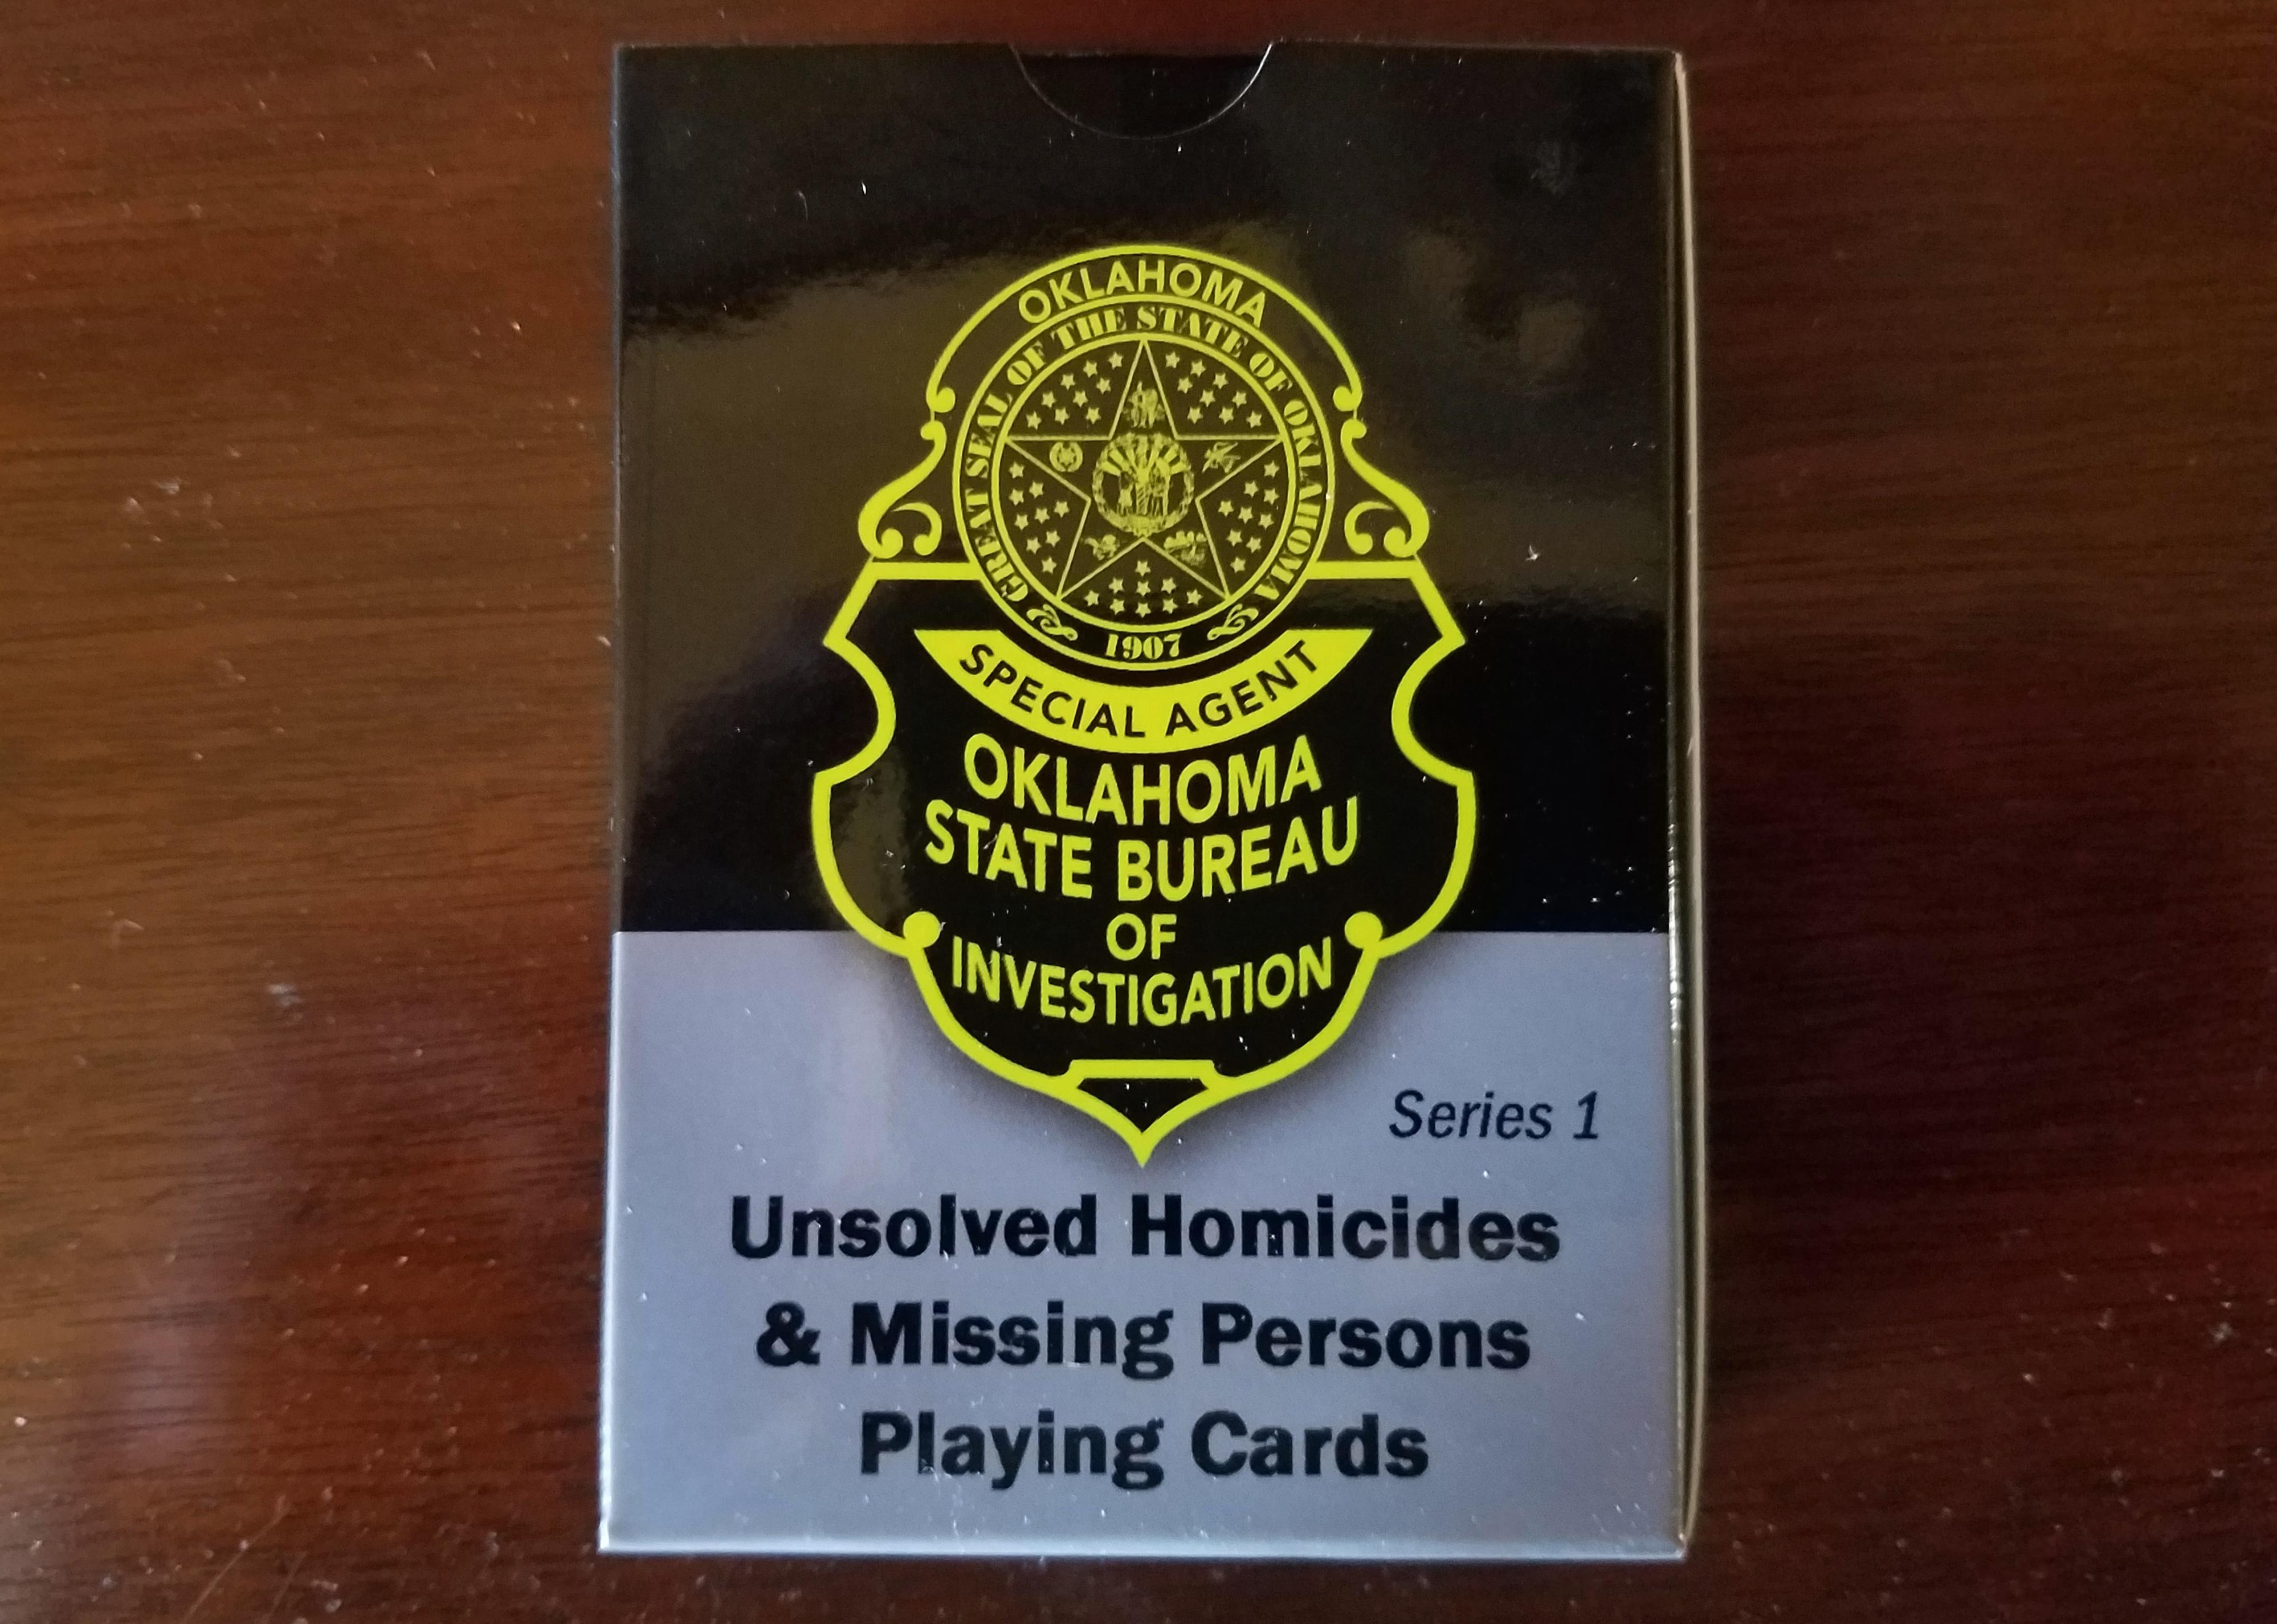 This Wednesday, Oct. 11, 2017 photo shows Oklahoma State Bureau of Investigation's unsolved Homicides & Missing Persons Playing Cards in Oklahoma City. Oklahoma State Bureau of Investigation Director and Oklahoma Department of Correction Director have joined to sell the state prison inmates the playing cards. (Oklahoma State Bureau of Investigation via AP)